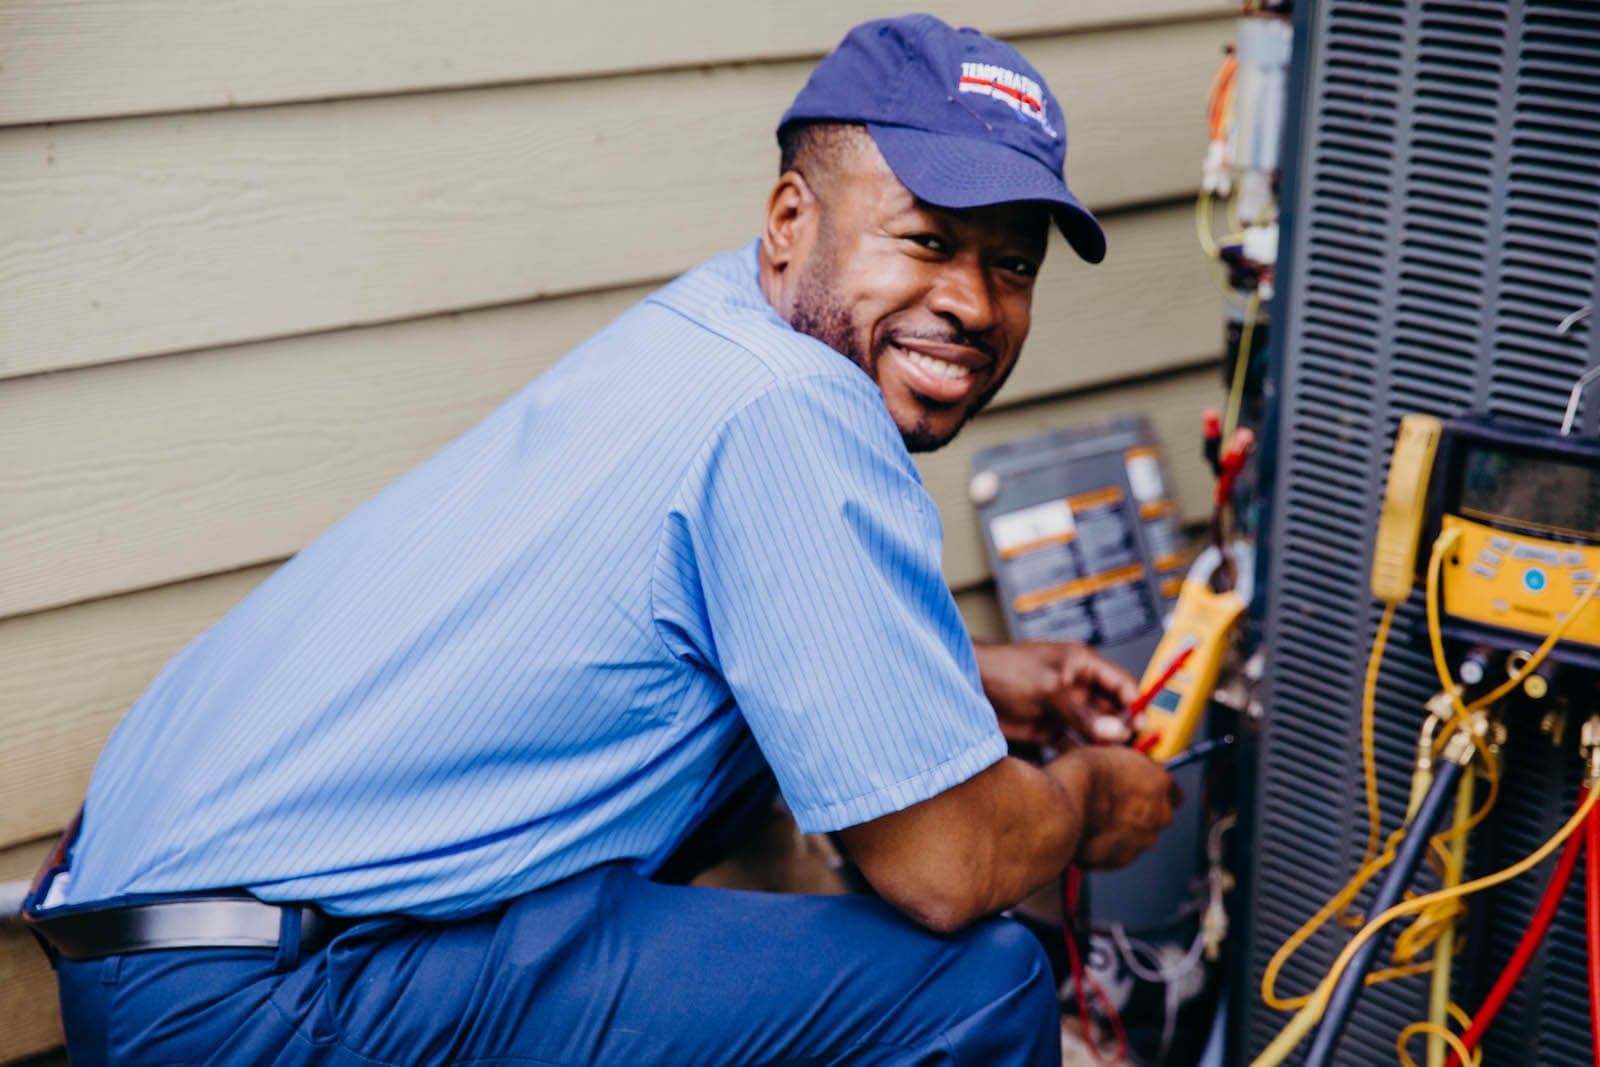 hvac technician working on outdoor heating and cooling unit